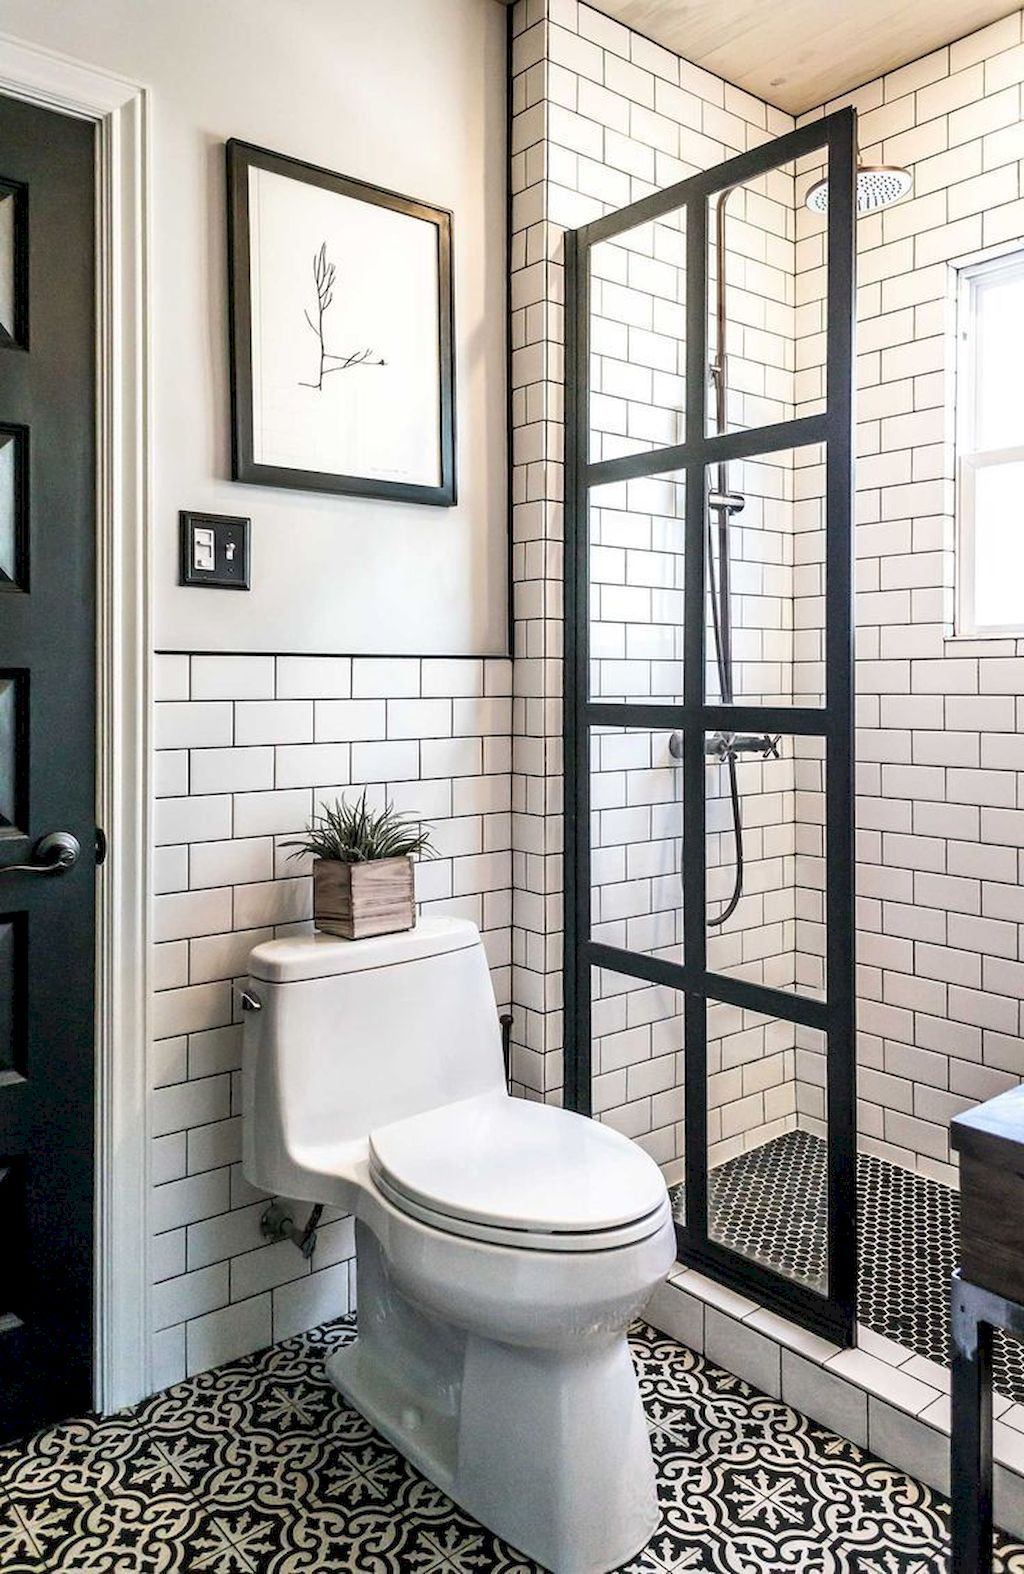 93 Cool Black And White Bathroom Design Ideas With Images